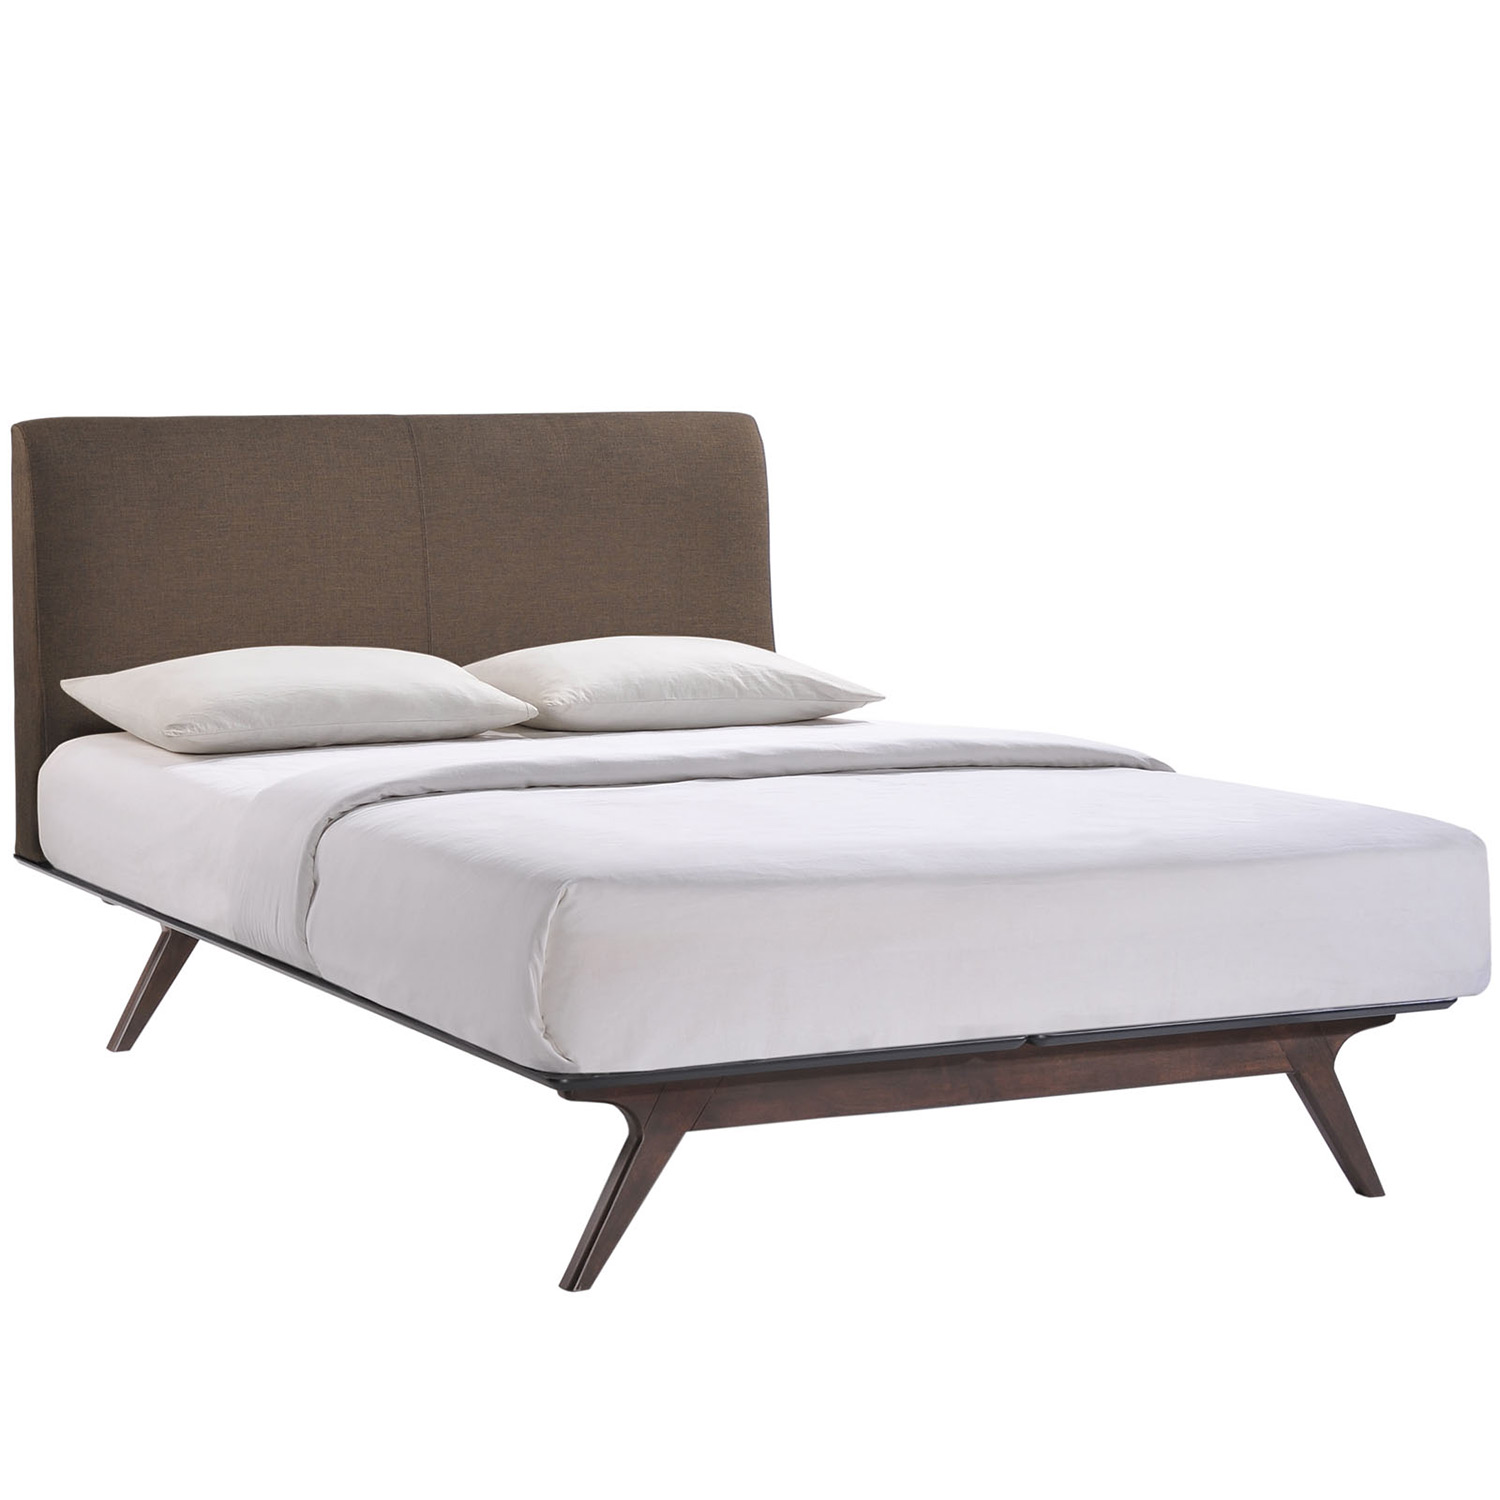 Modway Tracy Bed - Cappuccino Brown